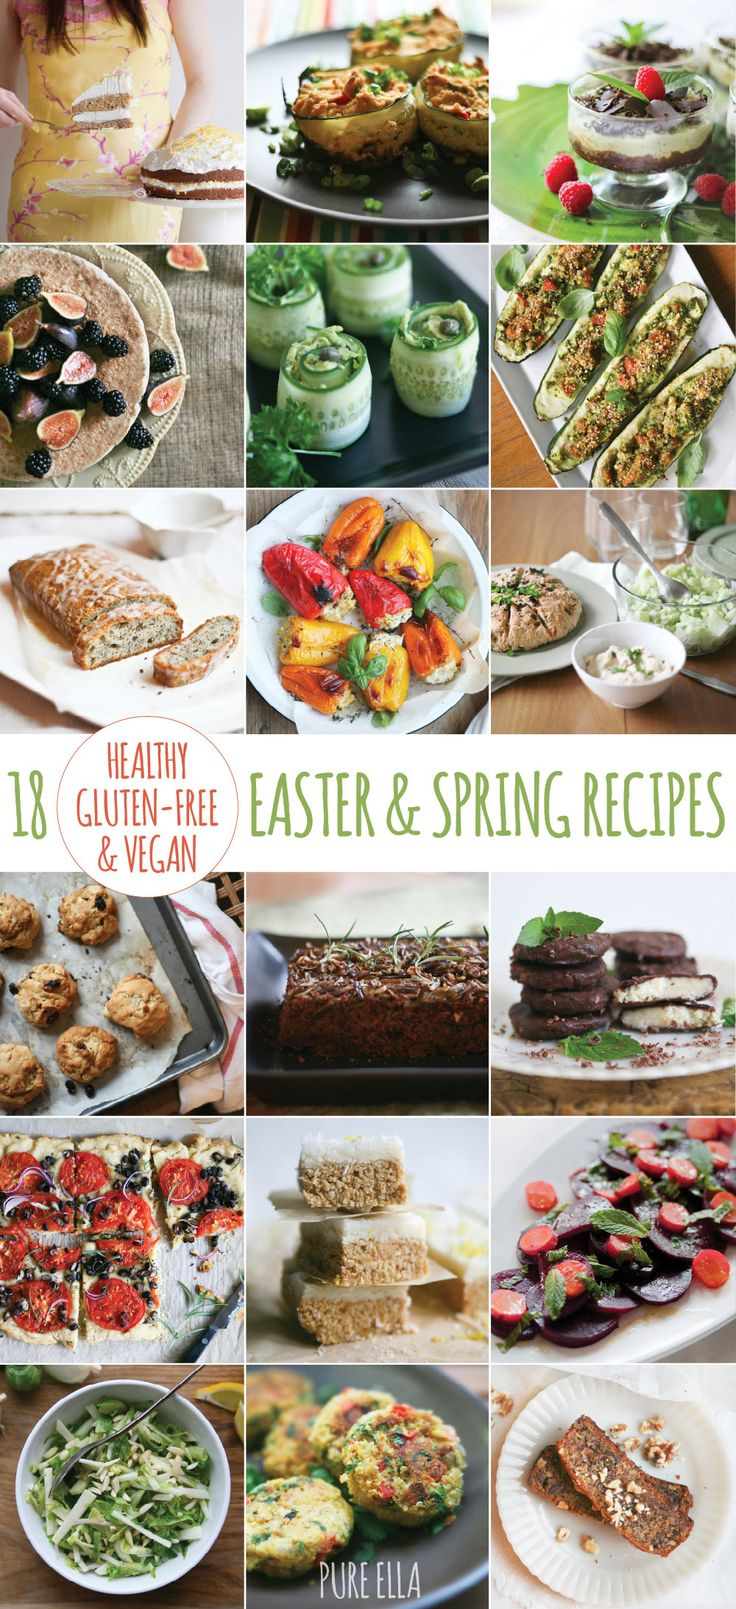 18 Healthy Gluten-free and Vegan Easter and Spring Recipes #glutenfree #dairyfree #eggfree #vegan #easter #recipes